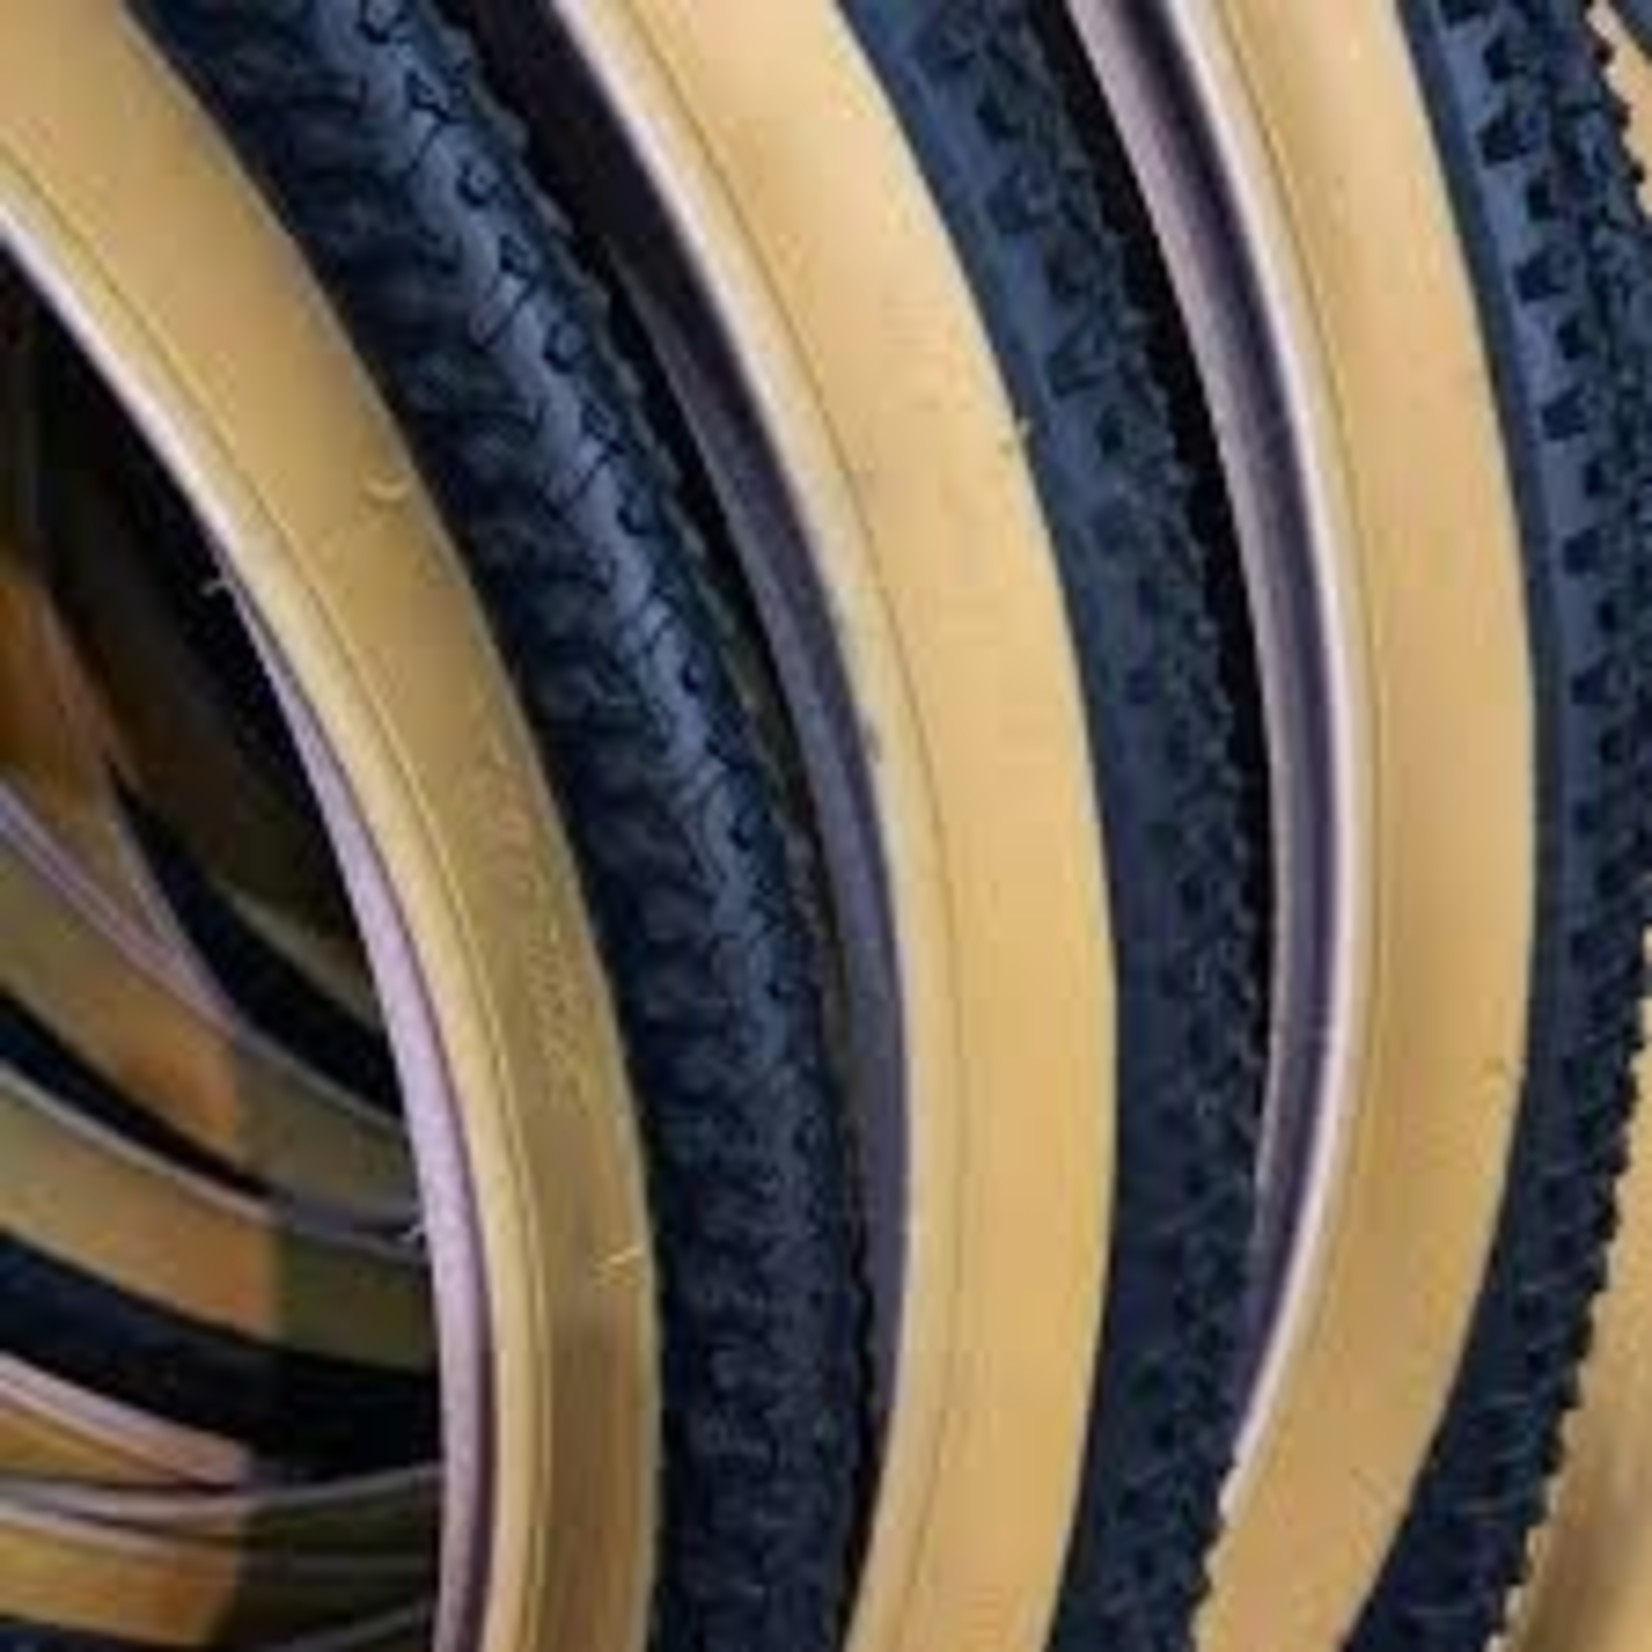 Damco Damco 24x1 3/8 Gumwall Wire Bead Tire